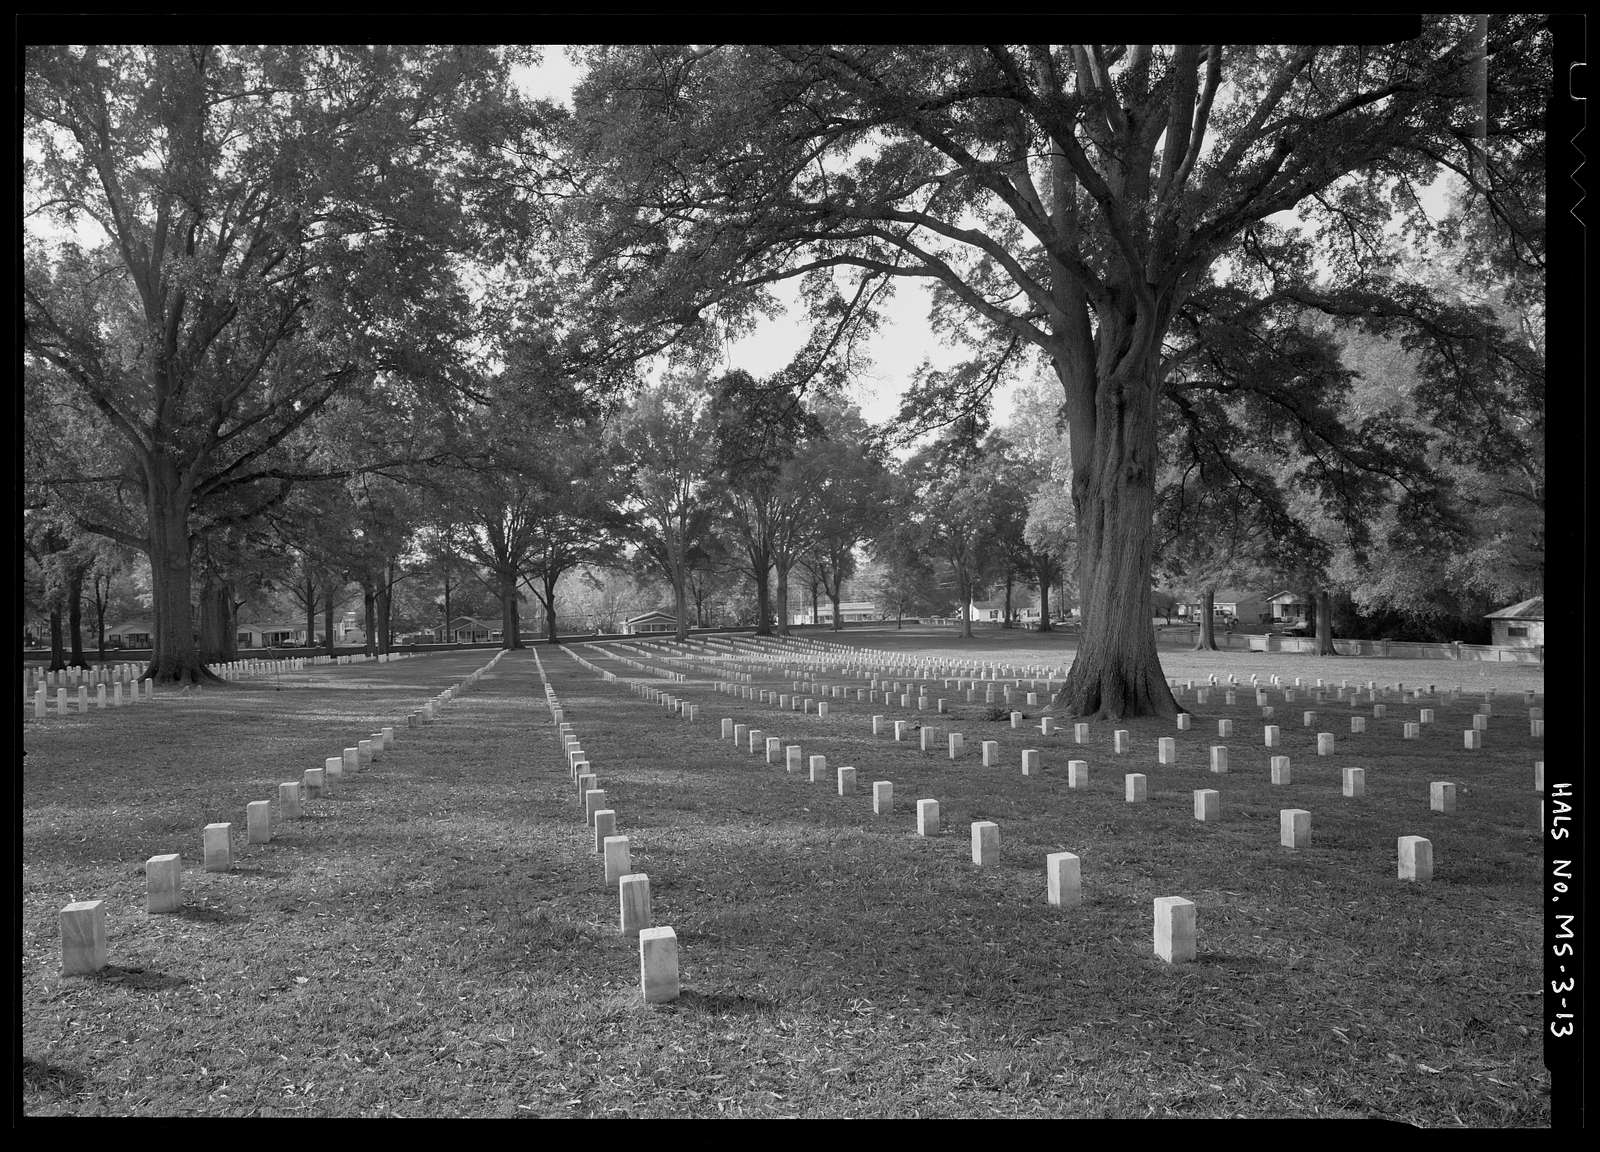 Corinth National Cemetery, 1551 Horton Street, Corinth, Alcorn County, MS